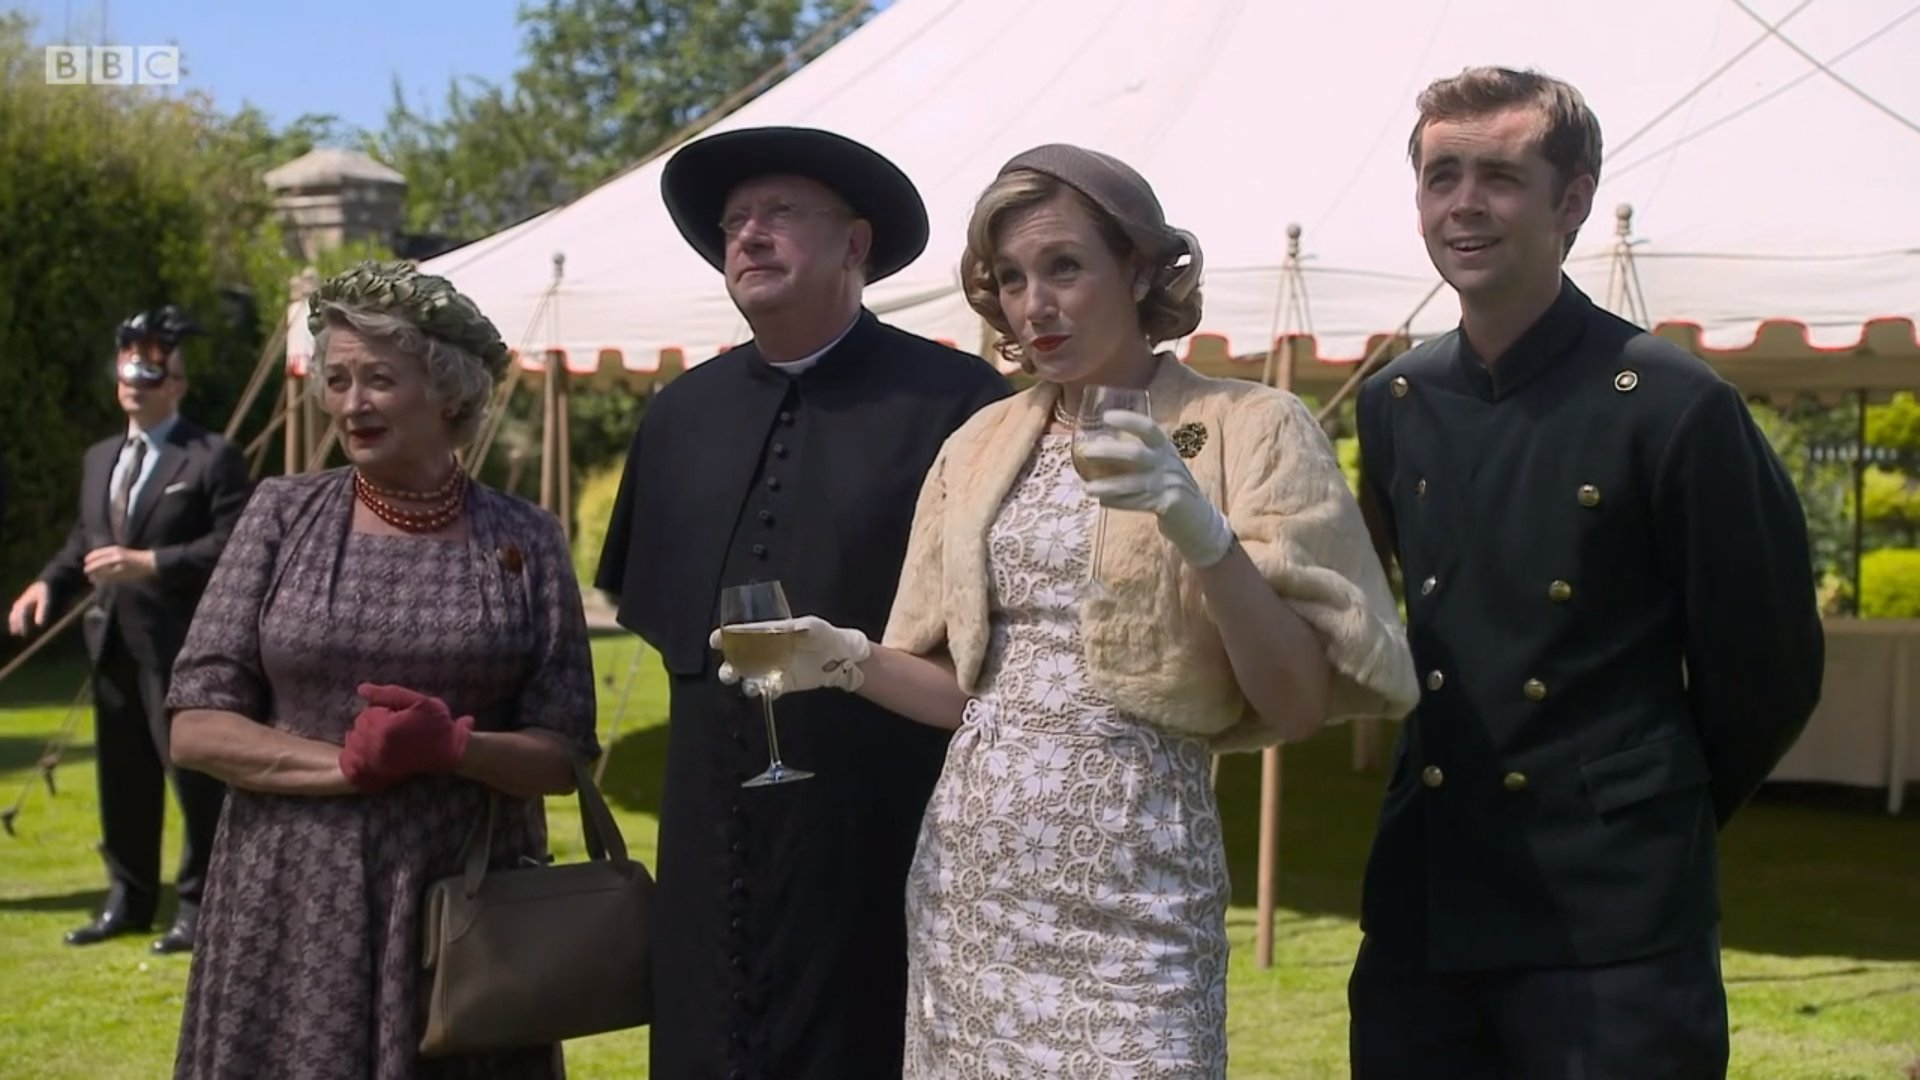 Nancy Carroll, Sorcha Cusack, Mark Williams, and Alex Price in Father Brown (2013)